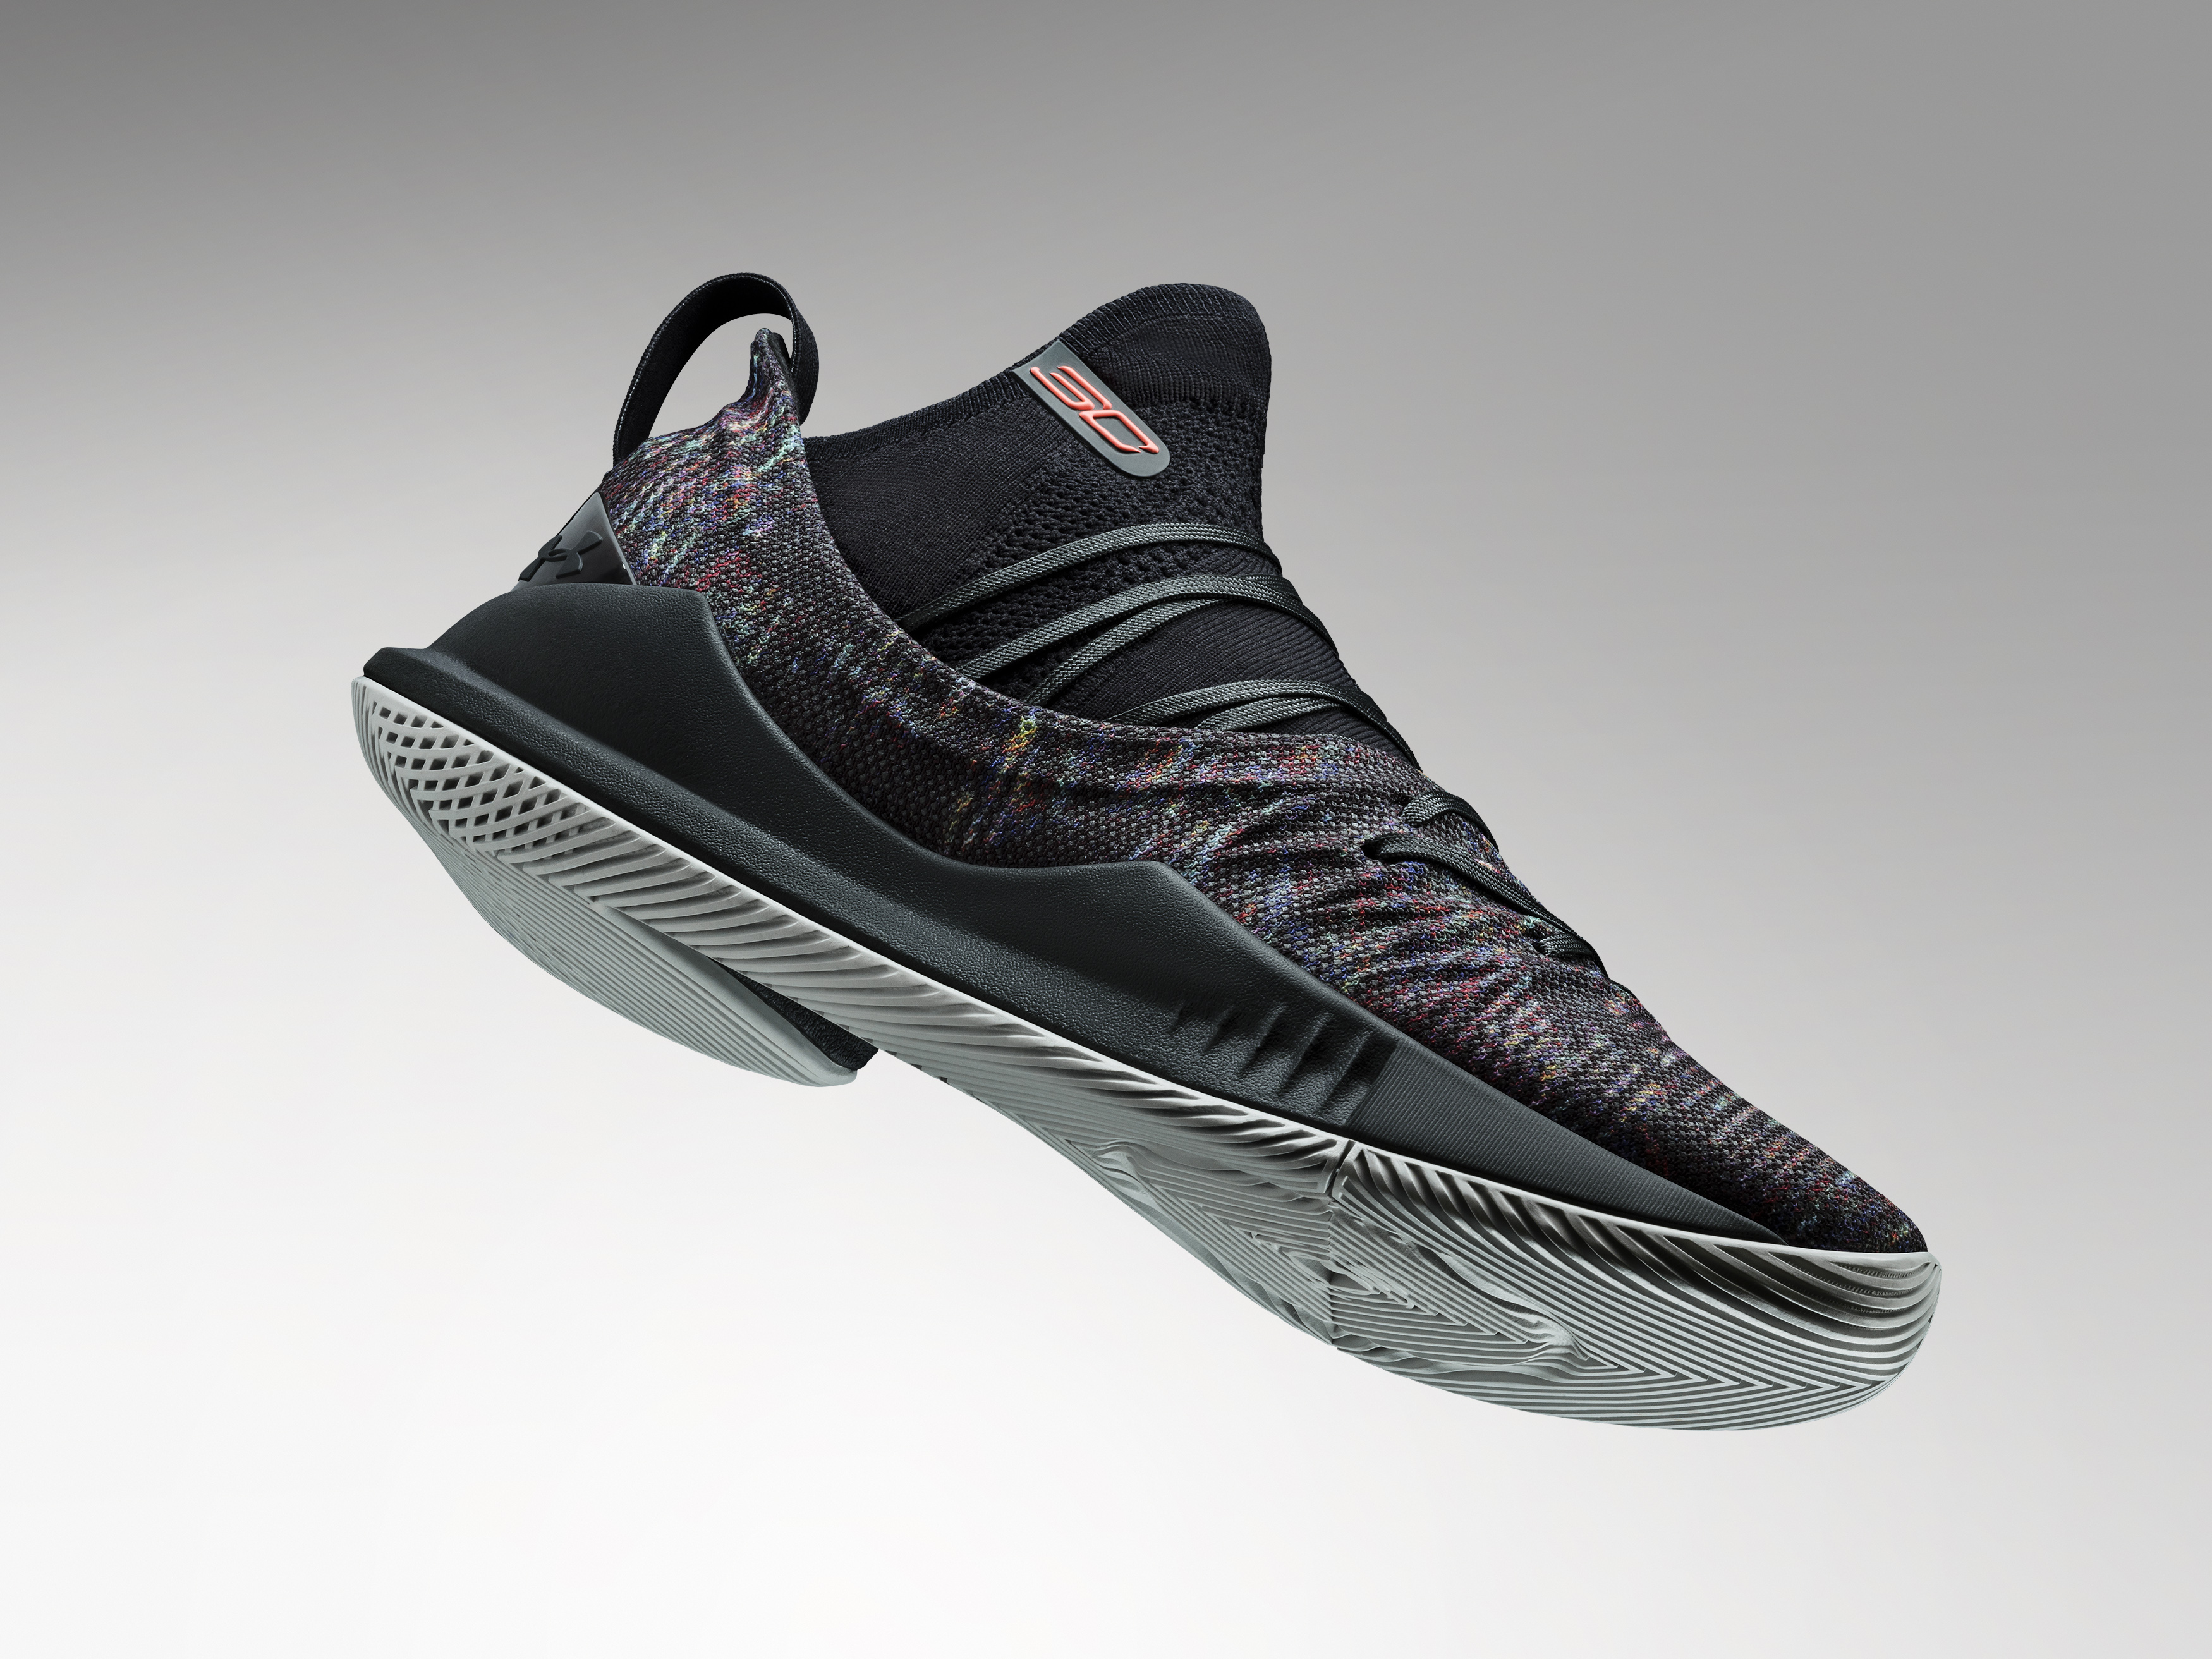 Curry 5 Tokyo Nights Colorway Release